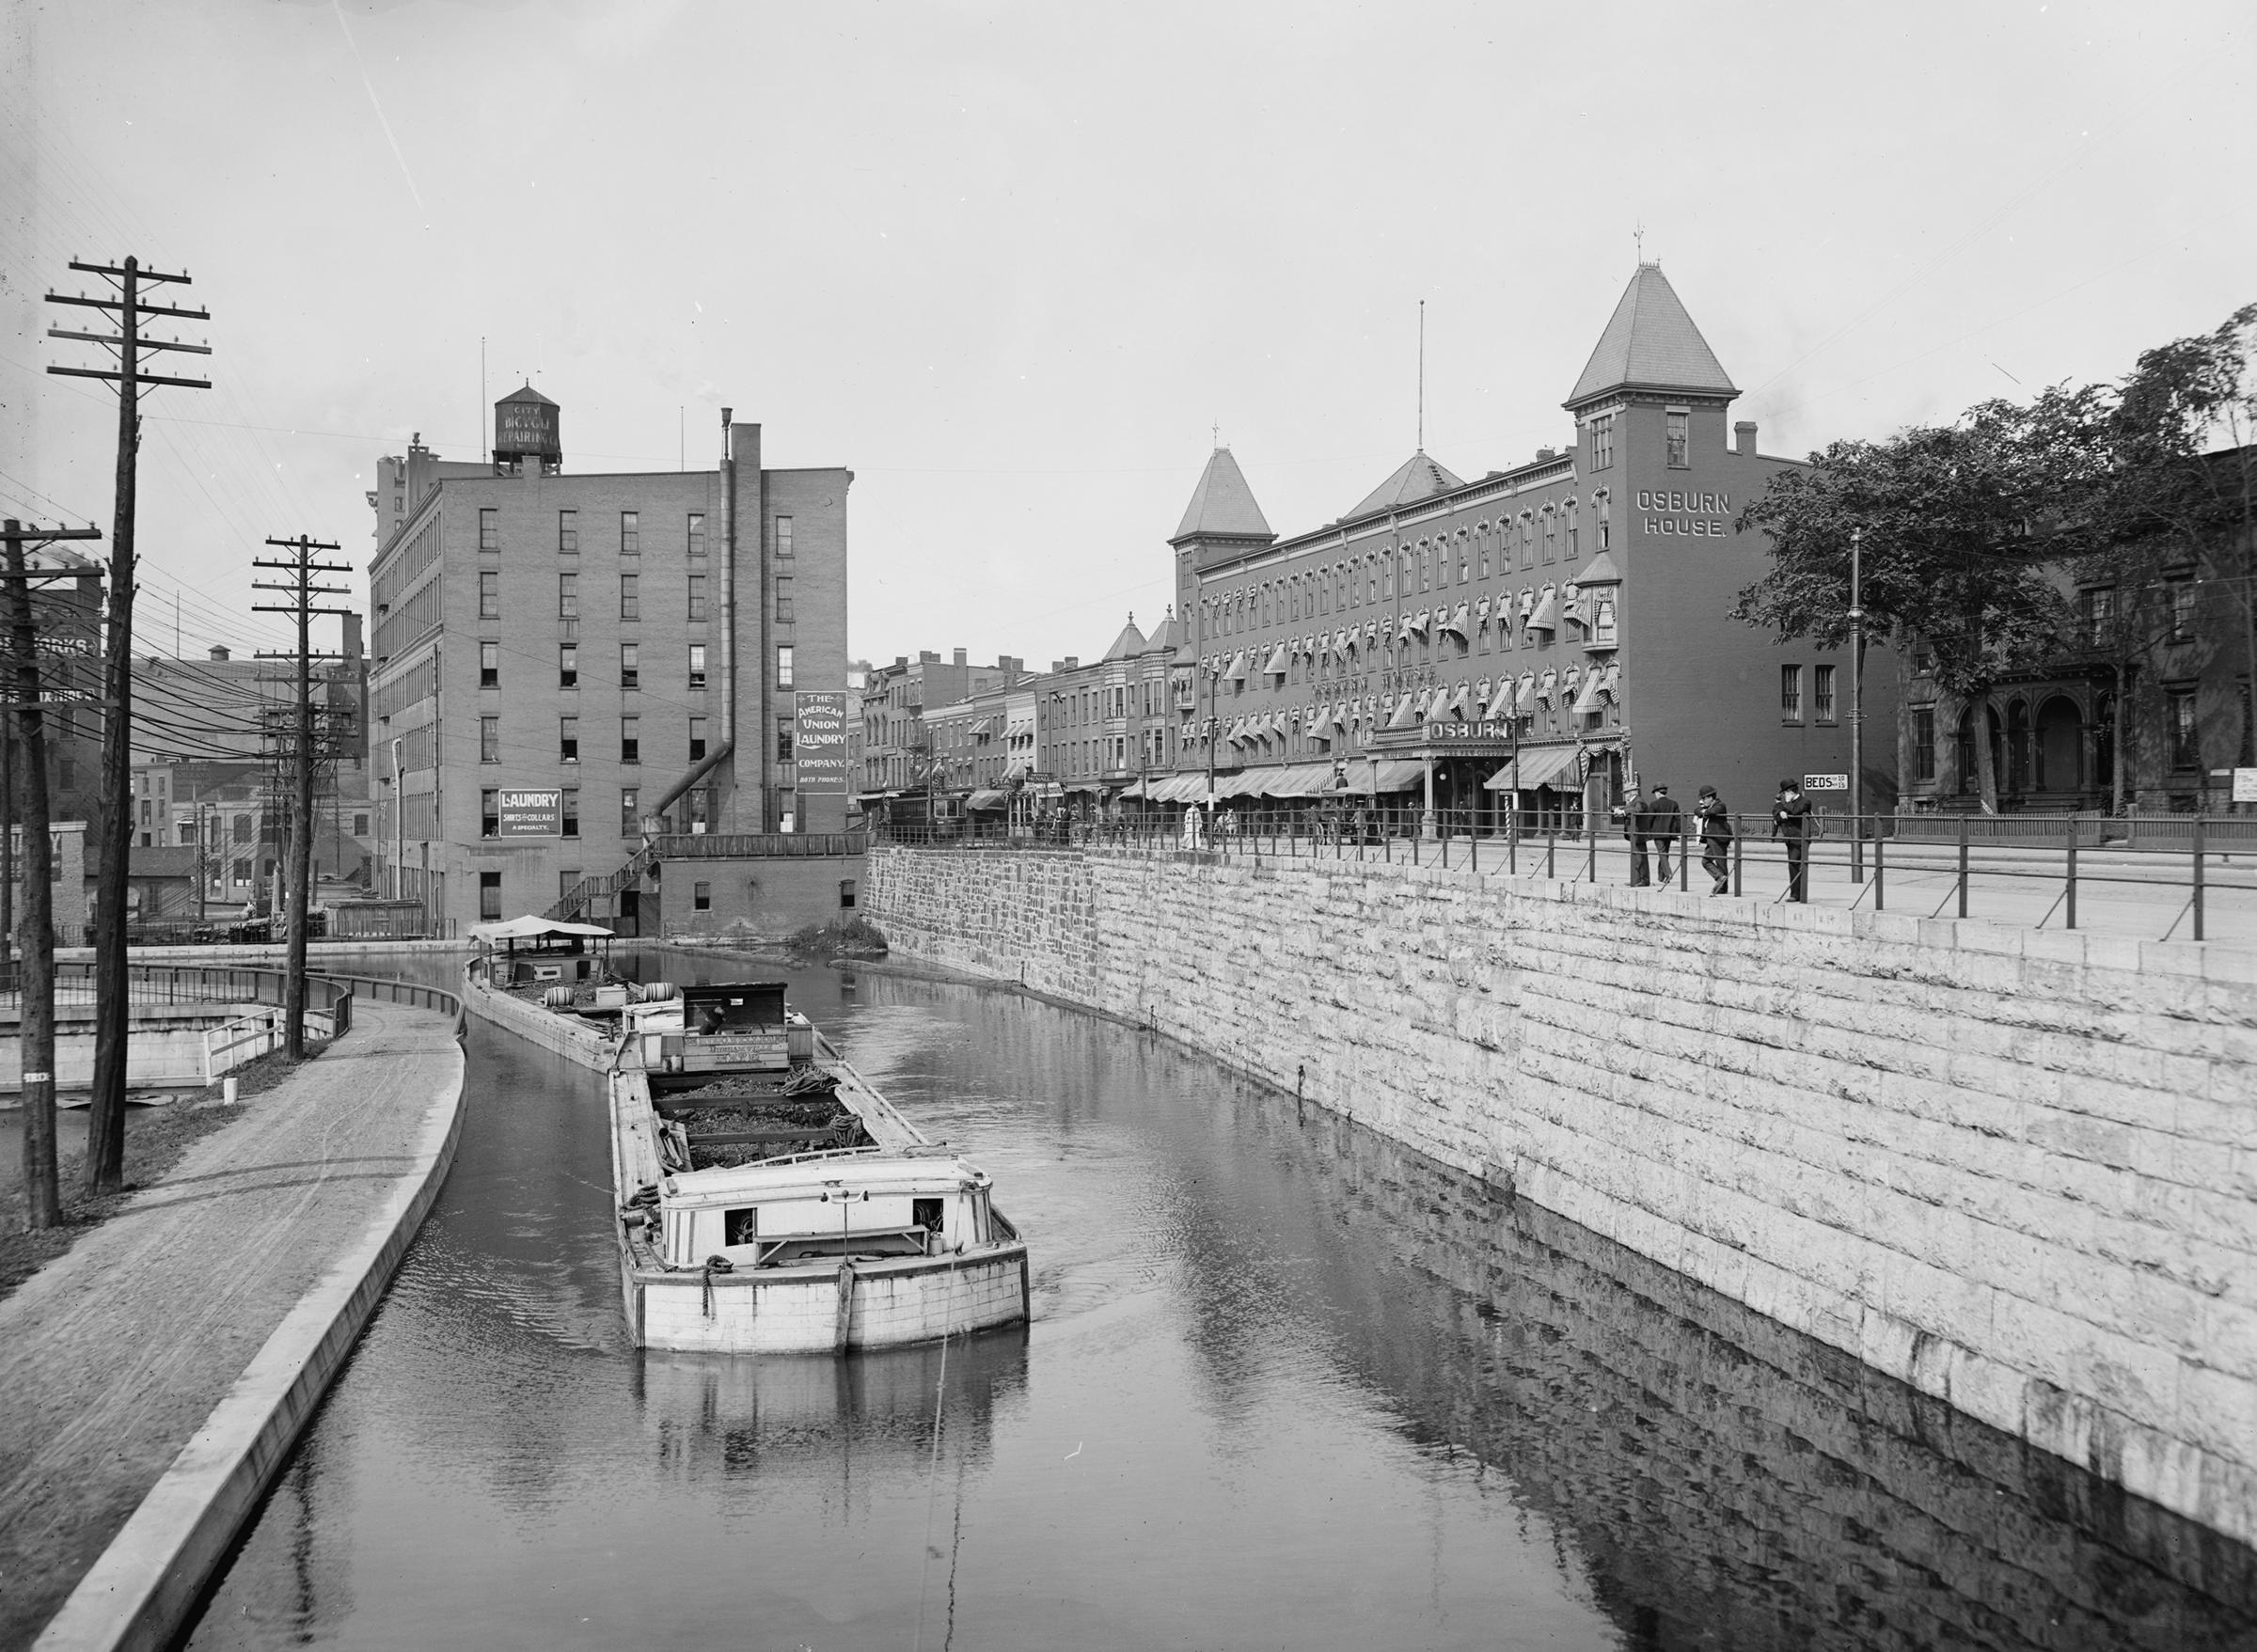 the price of prosperity the erie canal in new york Facturers who established businesses along the canal the general prosperity price for their produce, agri-1792 new york state the erie canal new york's.